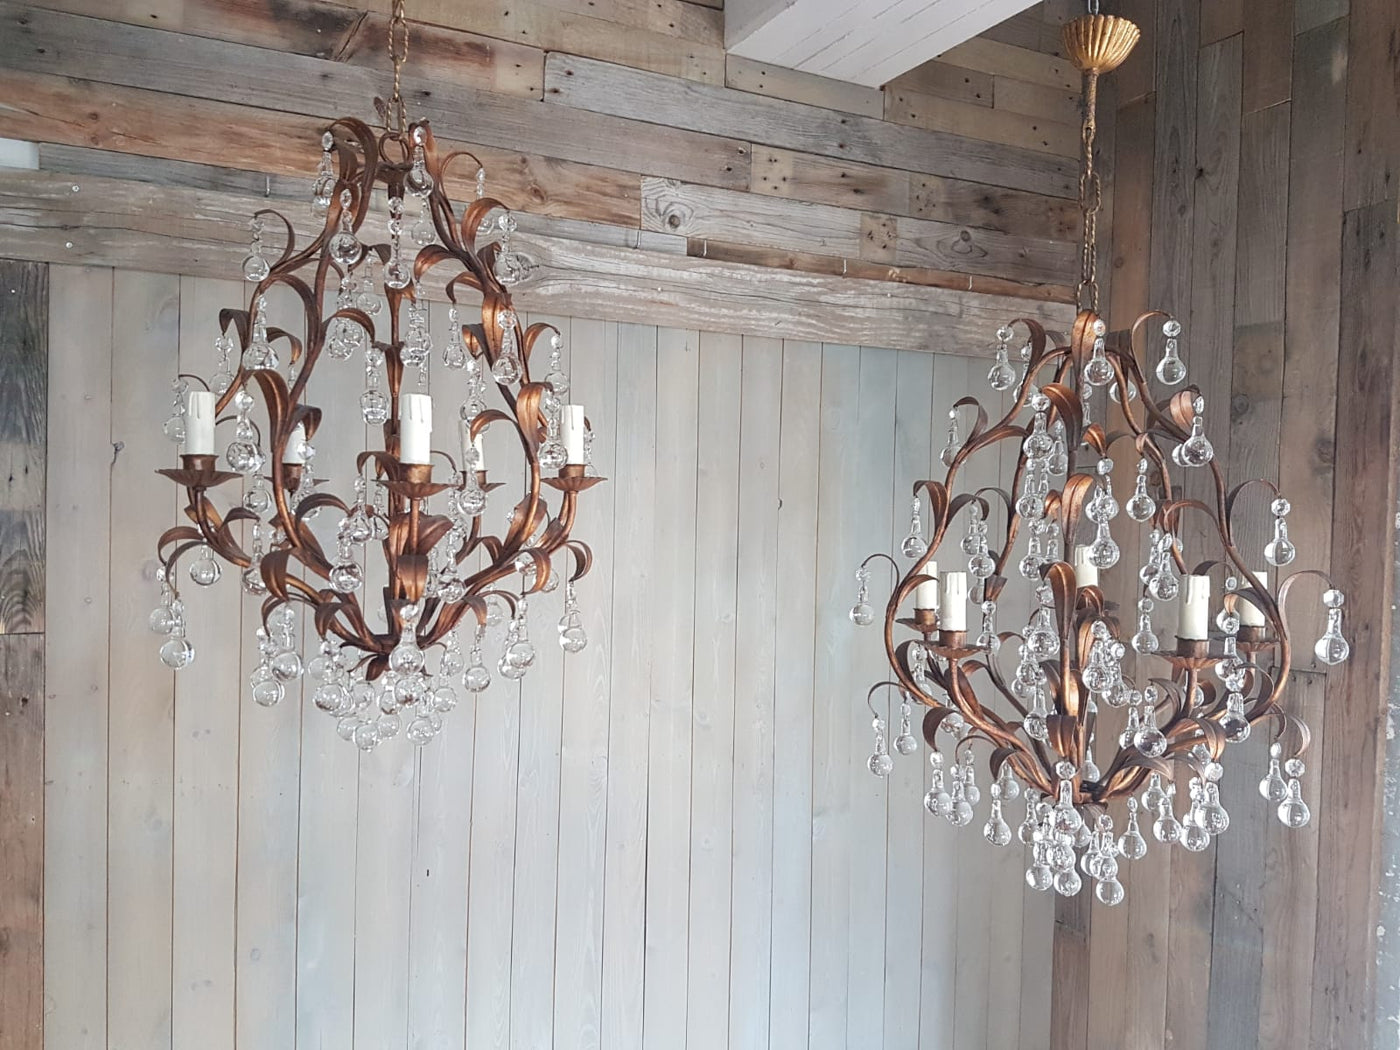 #6772-UIGG - Pair of Iron & Crystal Chandeliers